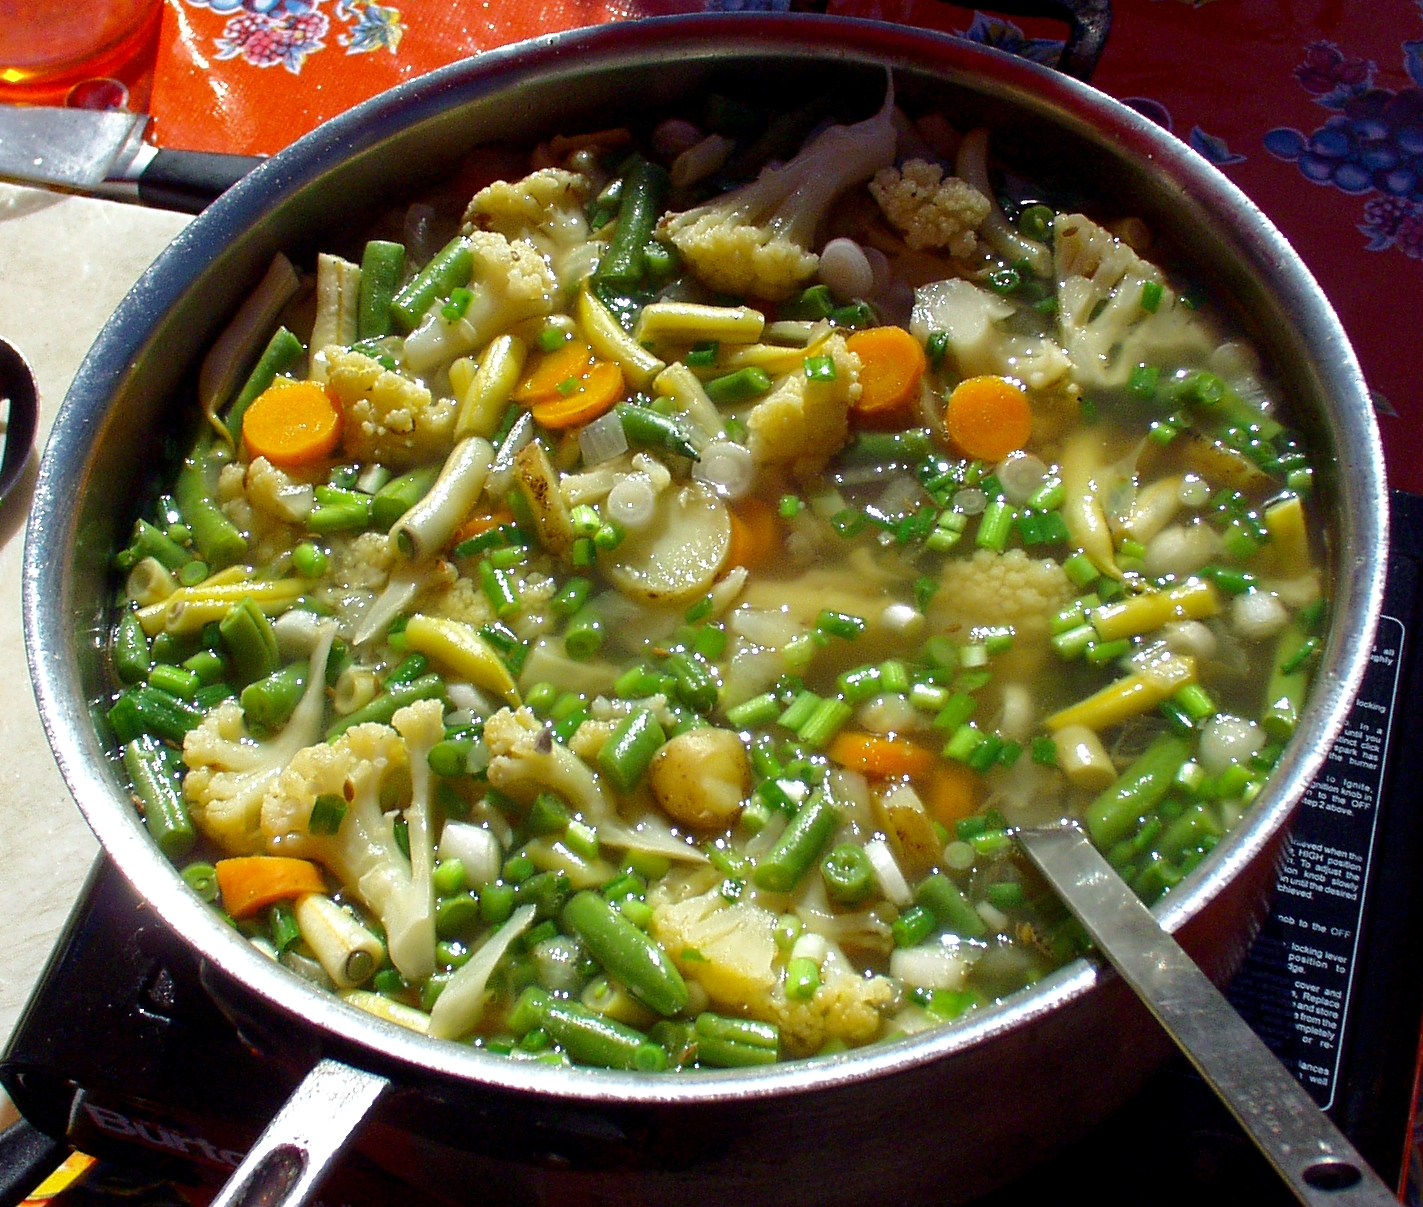 Chef Amy McCray's Vegetable Chowder. Photo copyright 2009 by Zachary D. Lyons.